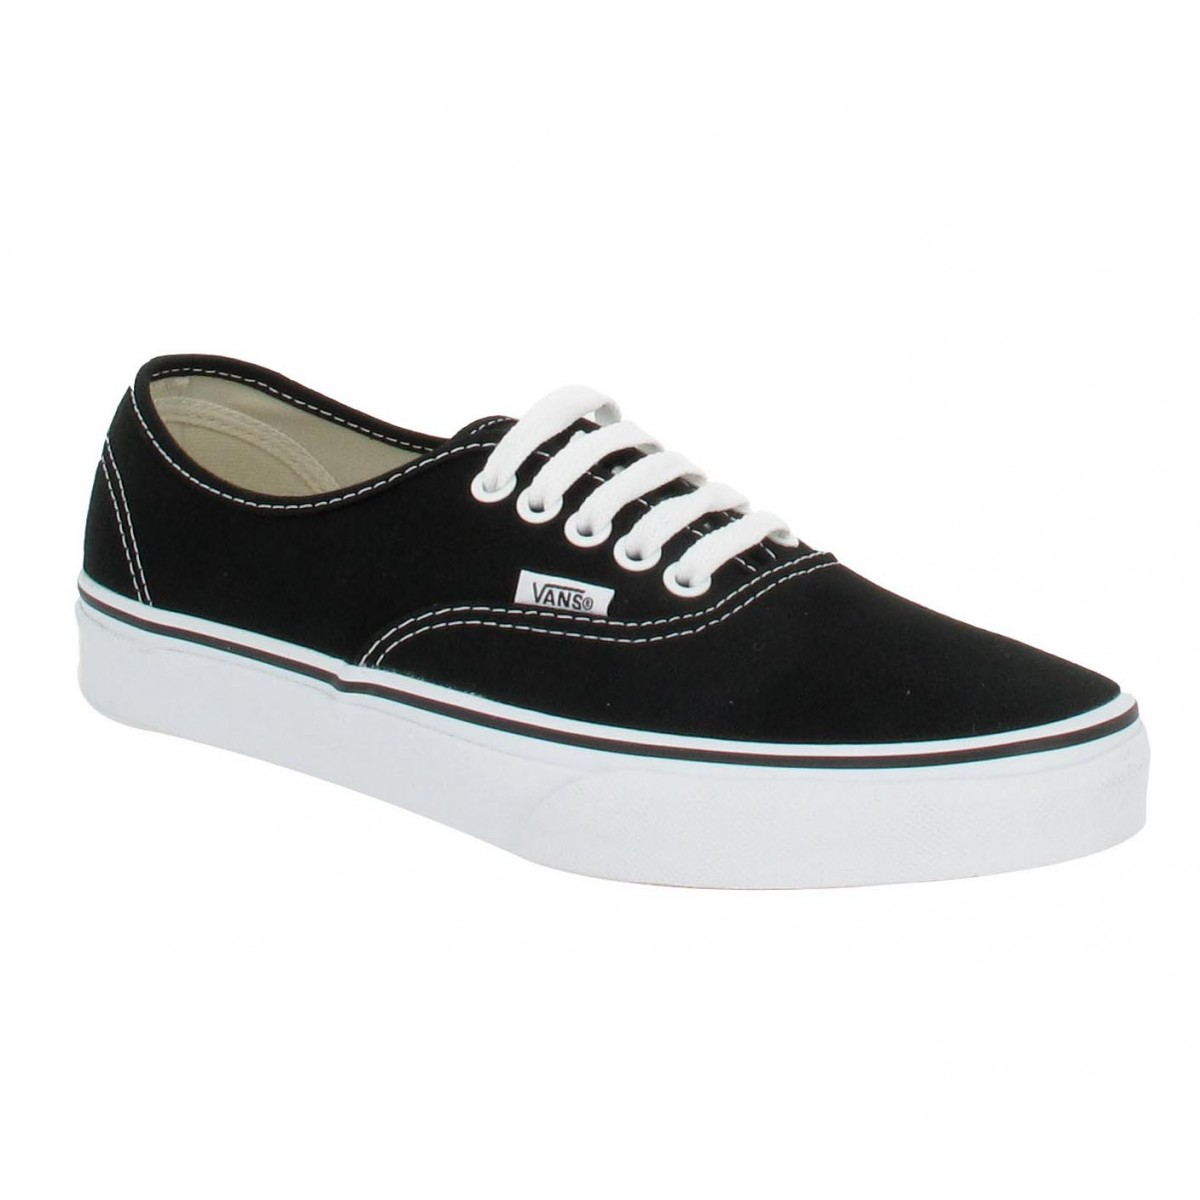 Vans Vans Vans Authentic Toile -37-noir